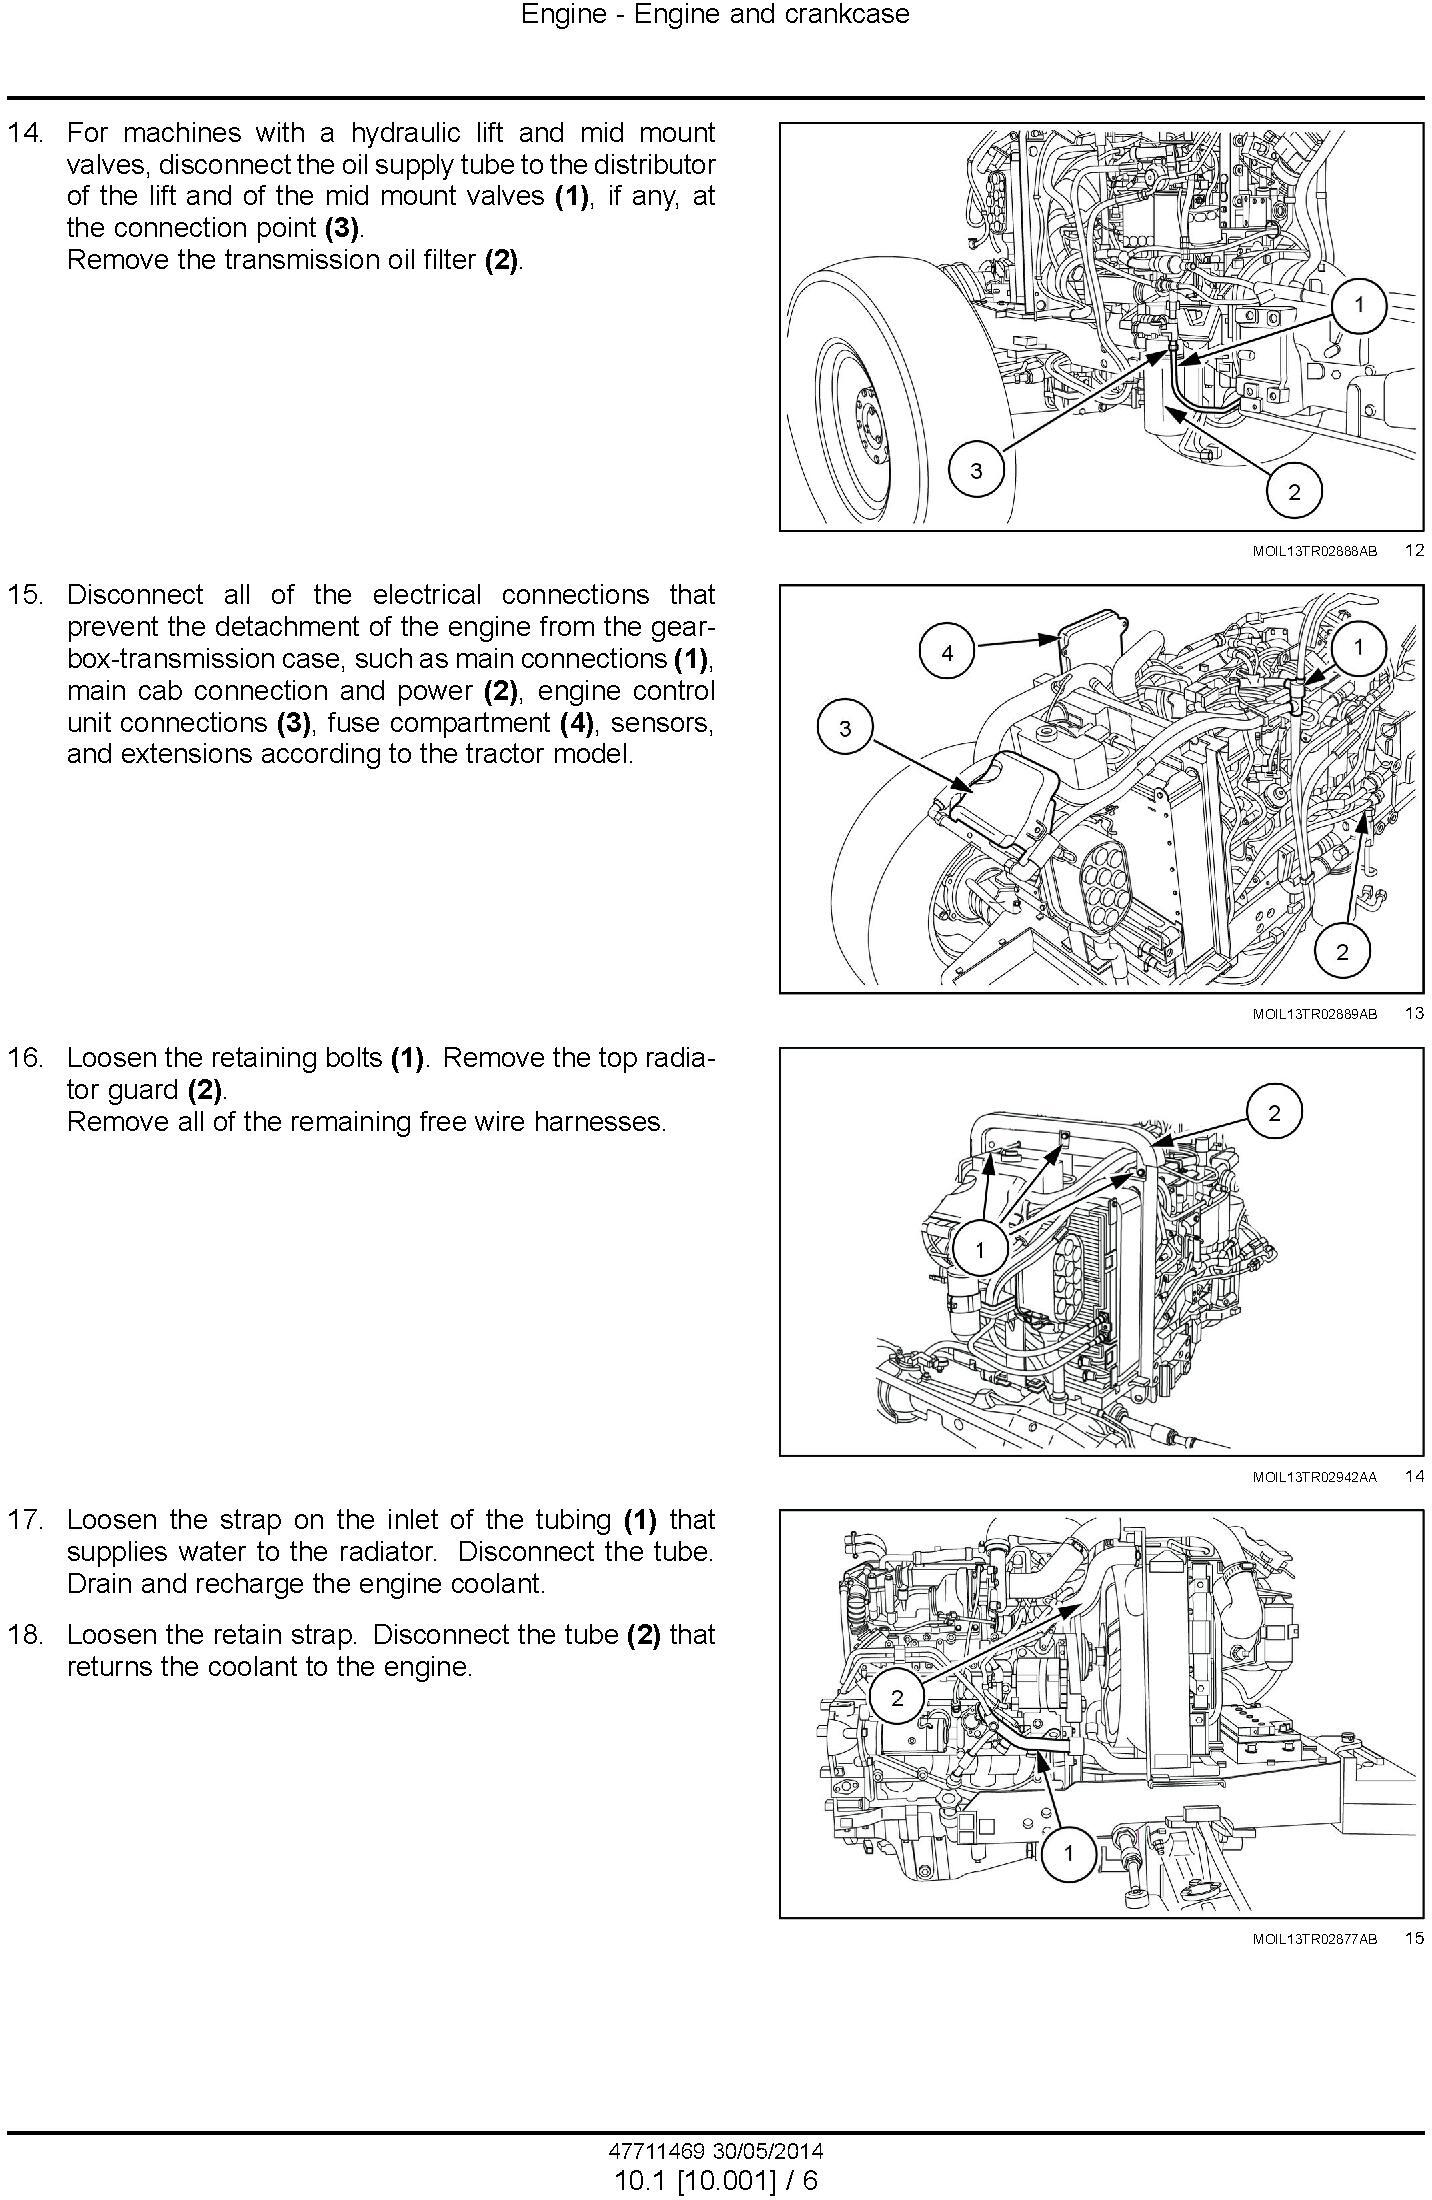 New Holland T4.75 POWERSTAR TIER 4B (FINAL) TRACTOR Complete Service Manual - 1